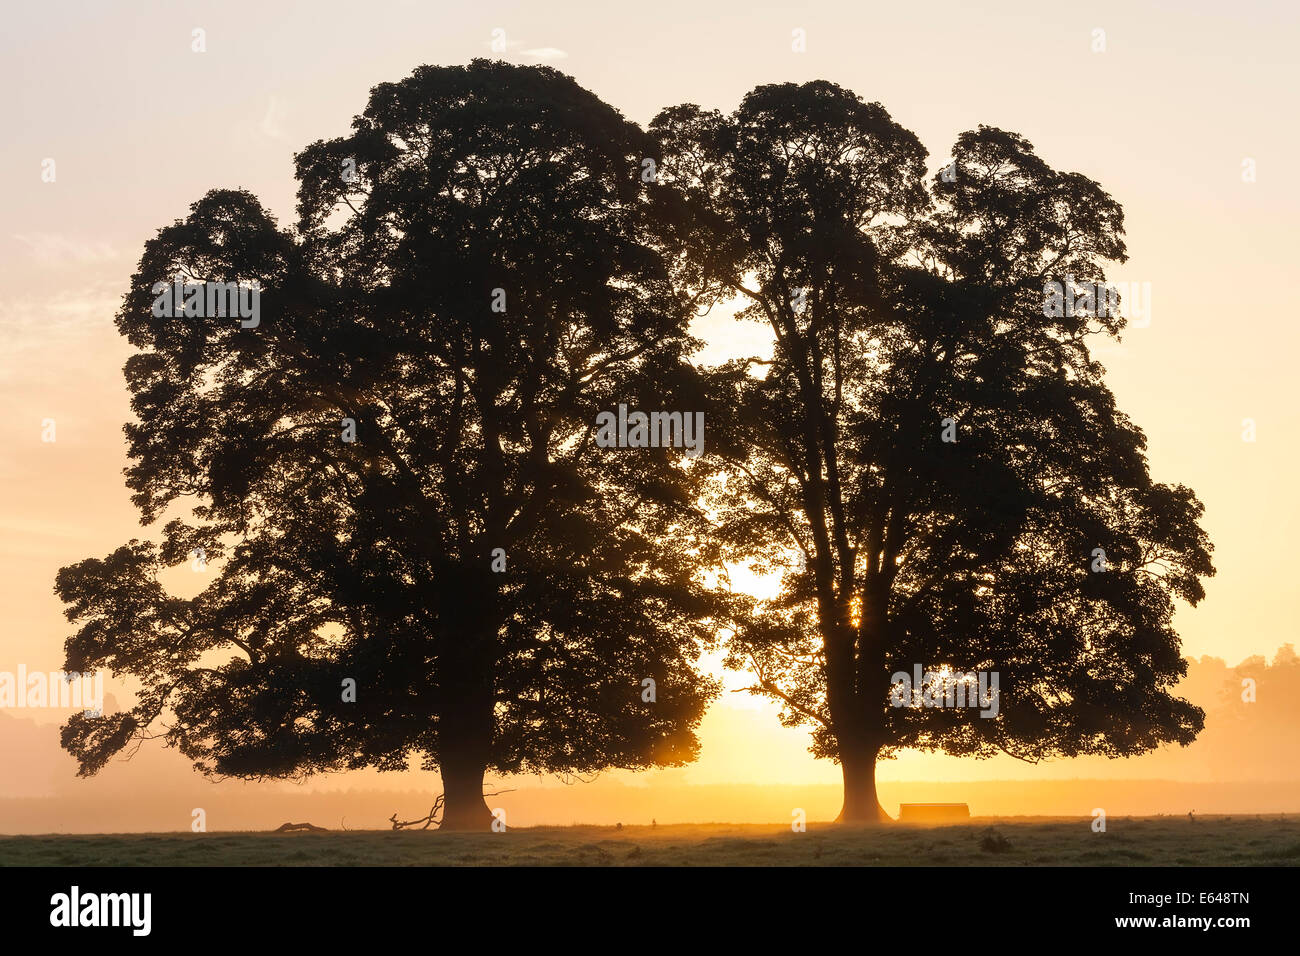 Sunrise, Usk Valley, South Wales, UK Stockbild